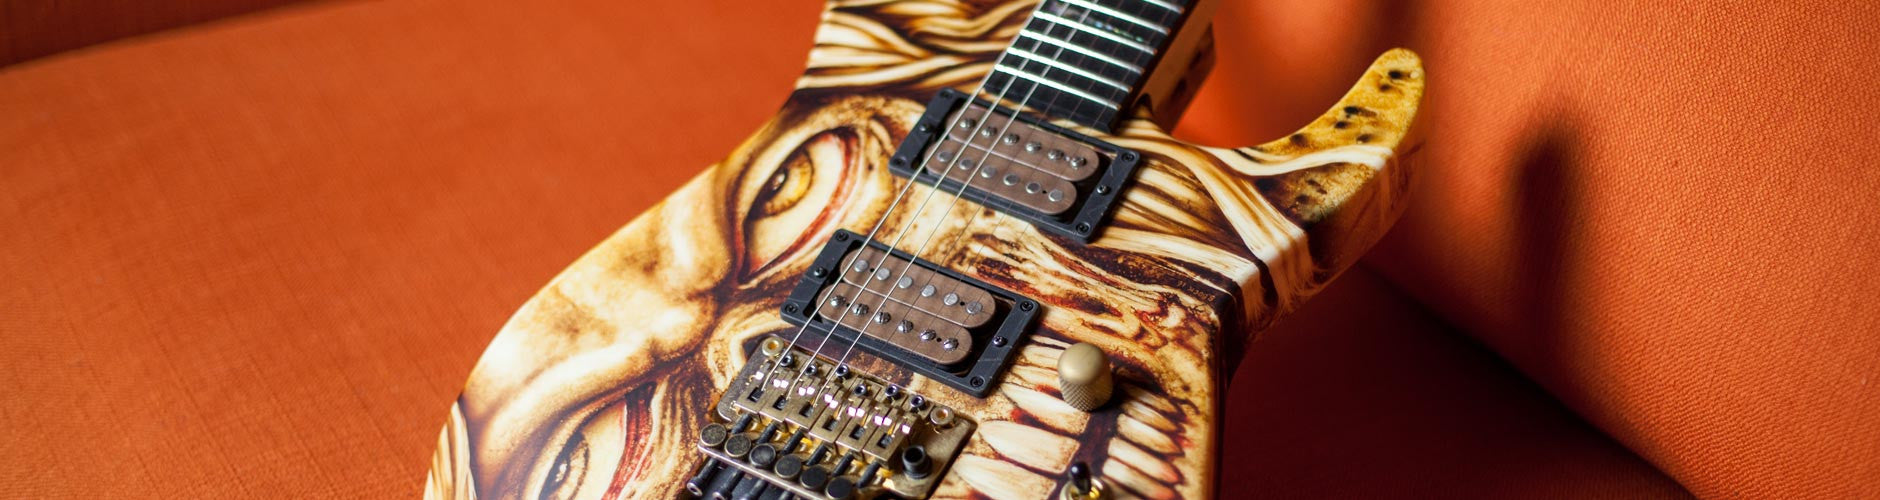 Jackson Guitars At The Music Zoo